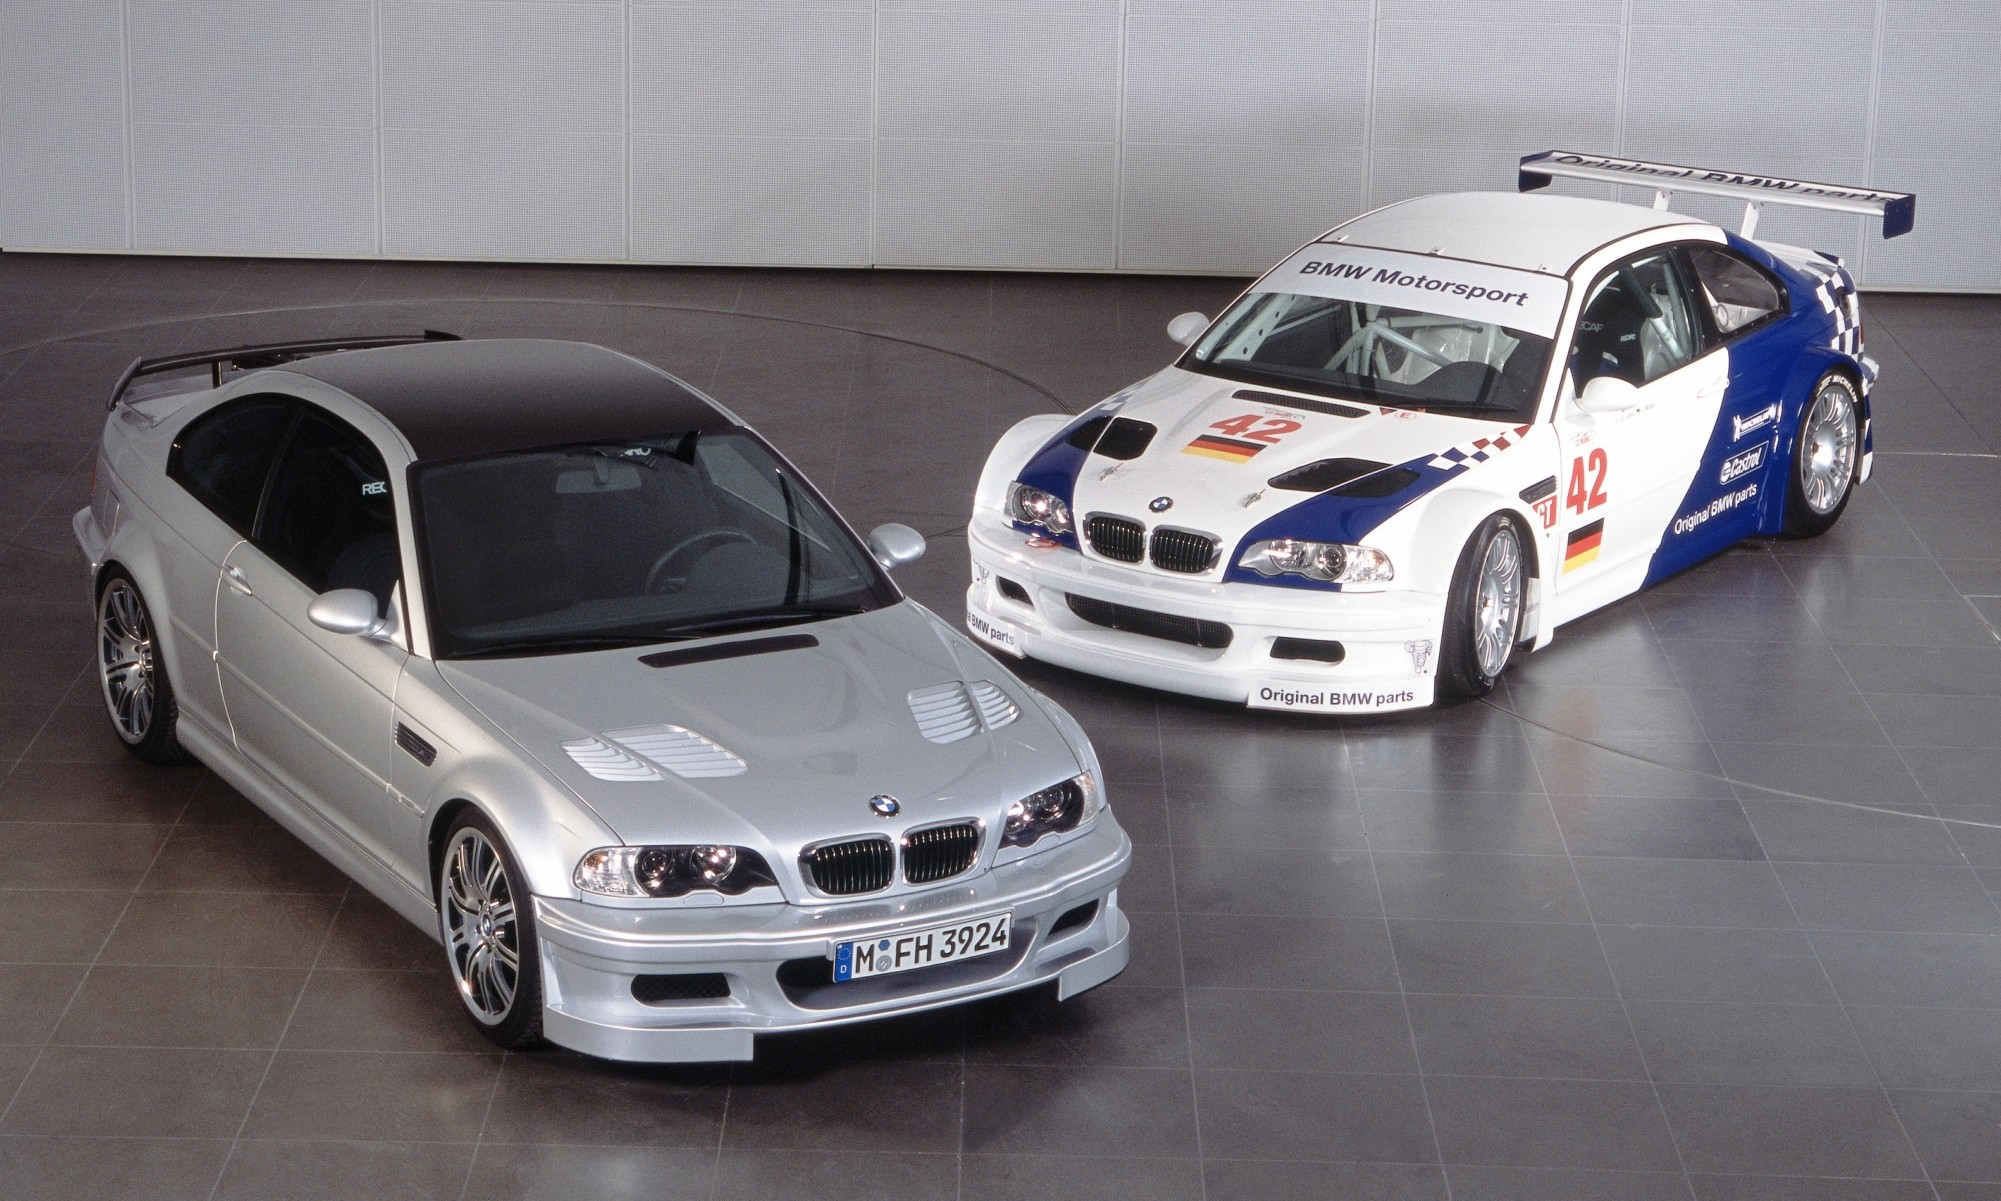 BMW M3 GTR road and racecar